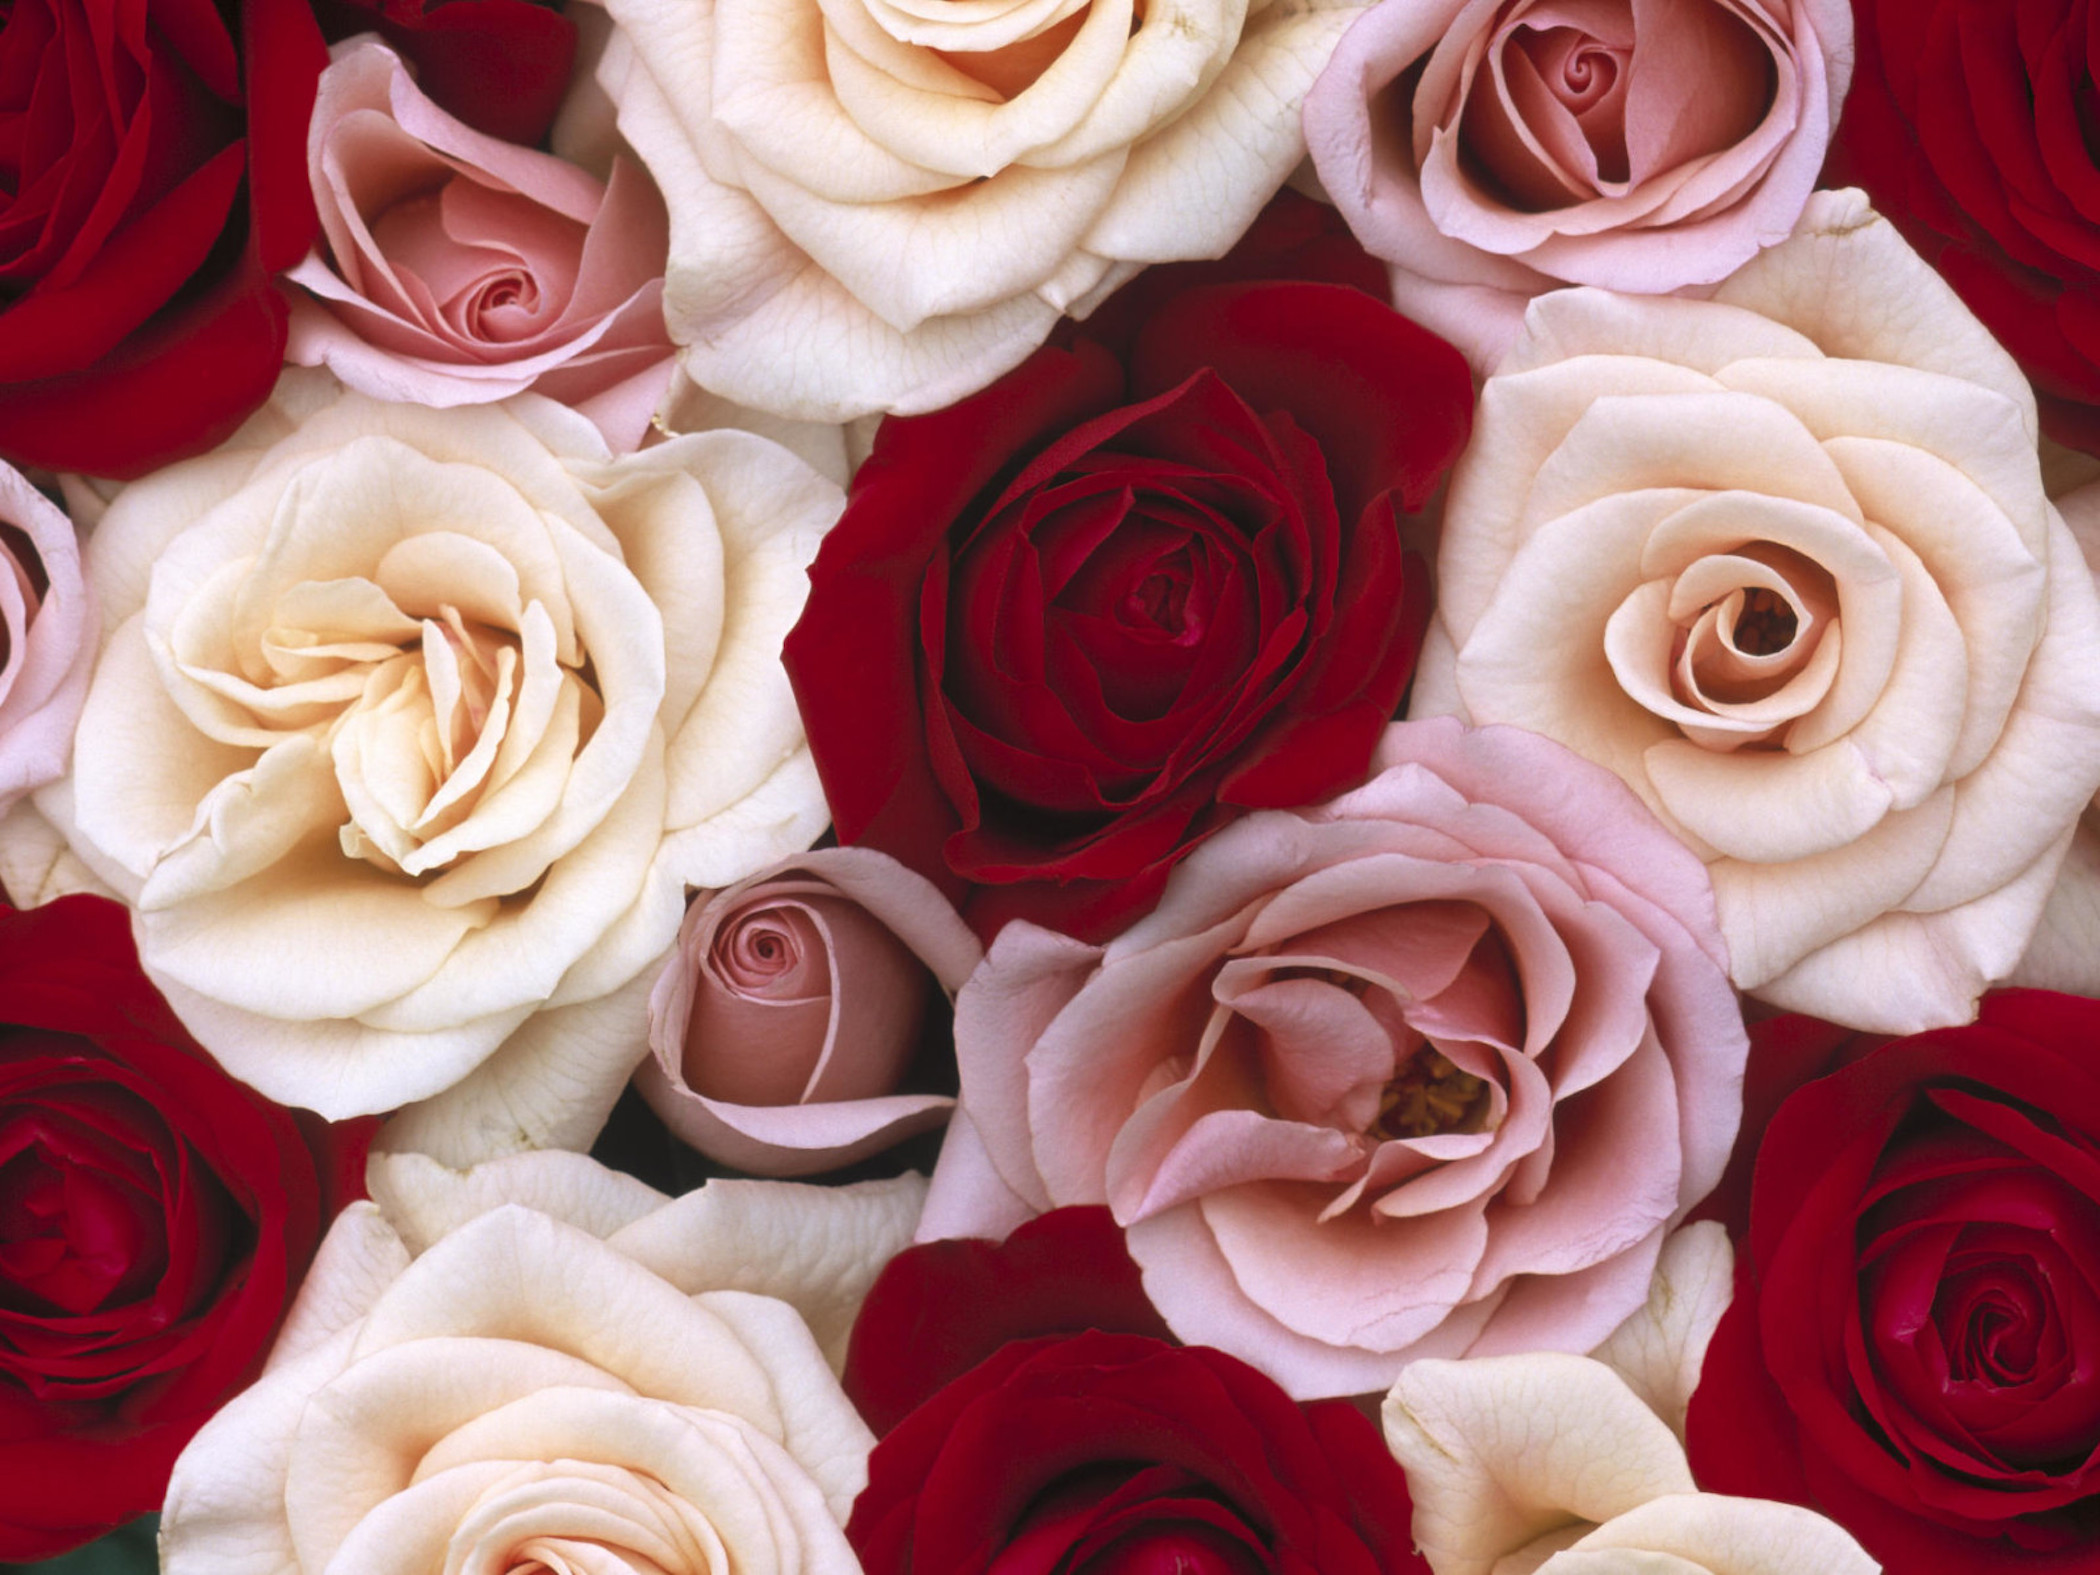 Romantic Roses Roses Wallpaper 13966052 Fanpop Pictures To Pin On